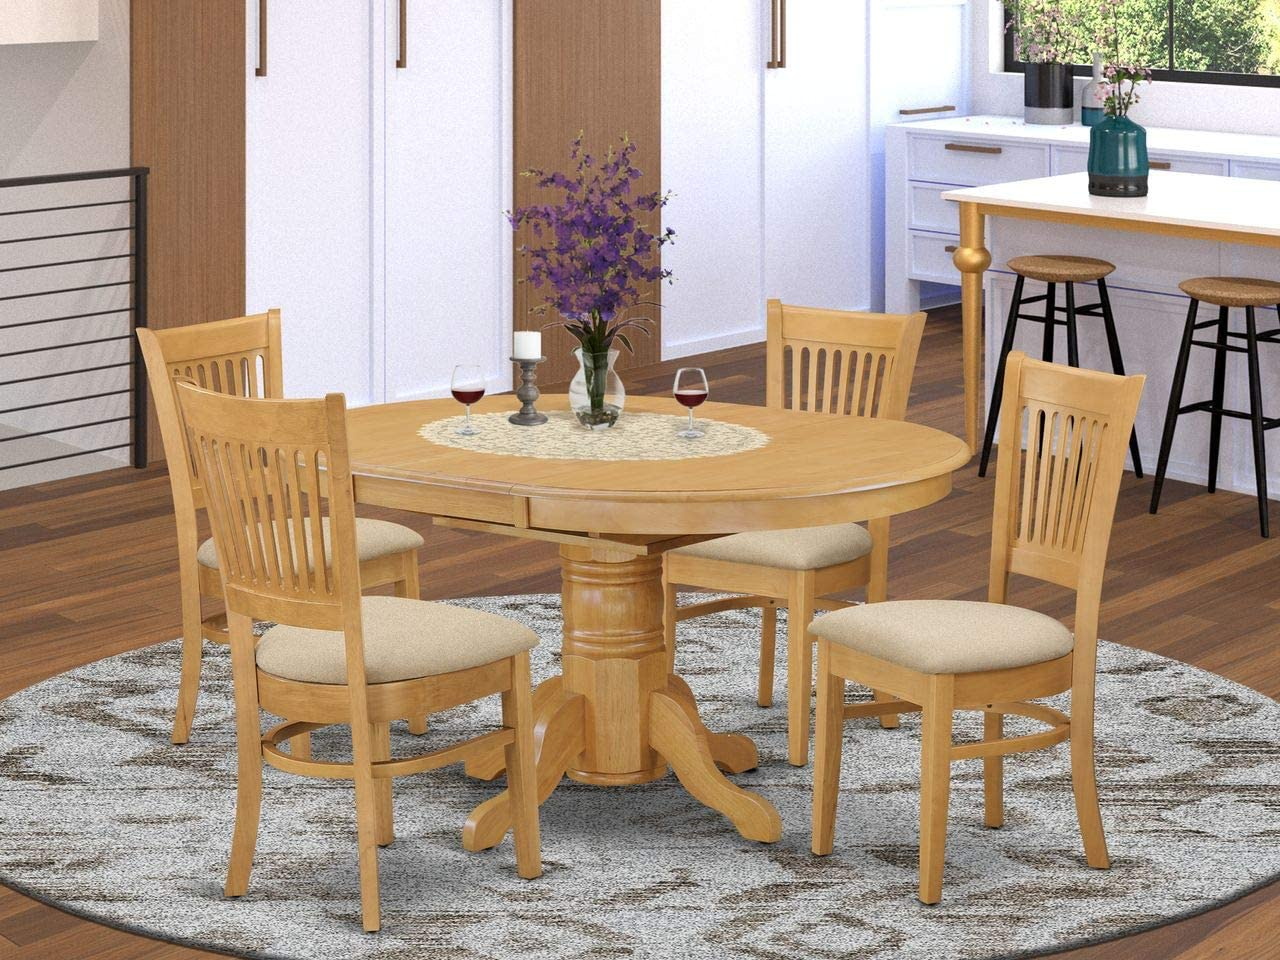 East West Furniture AVVA9 OAK C dining room table set  9 Awesome wooden  dining chairs   A Lovely dinner table  Linen Fabric seat and Oak Finnish ...